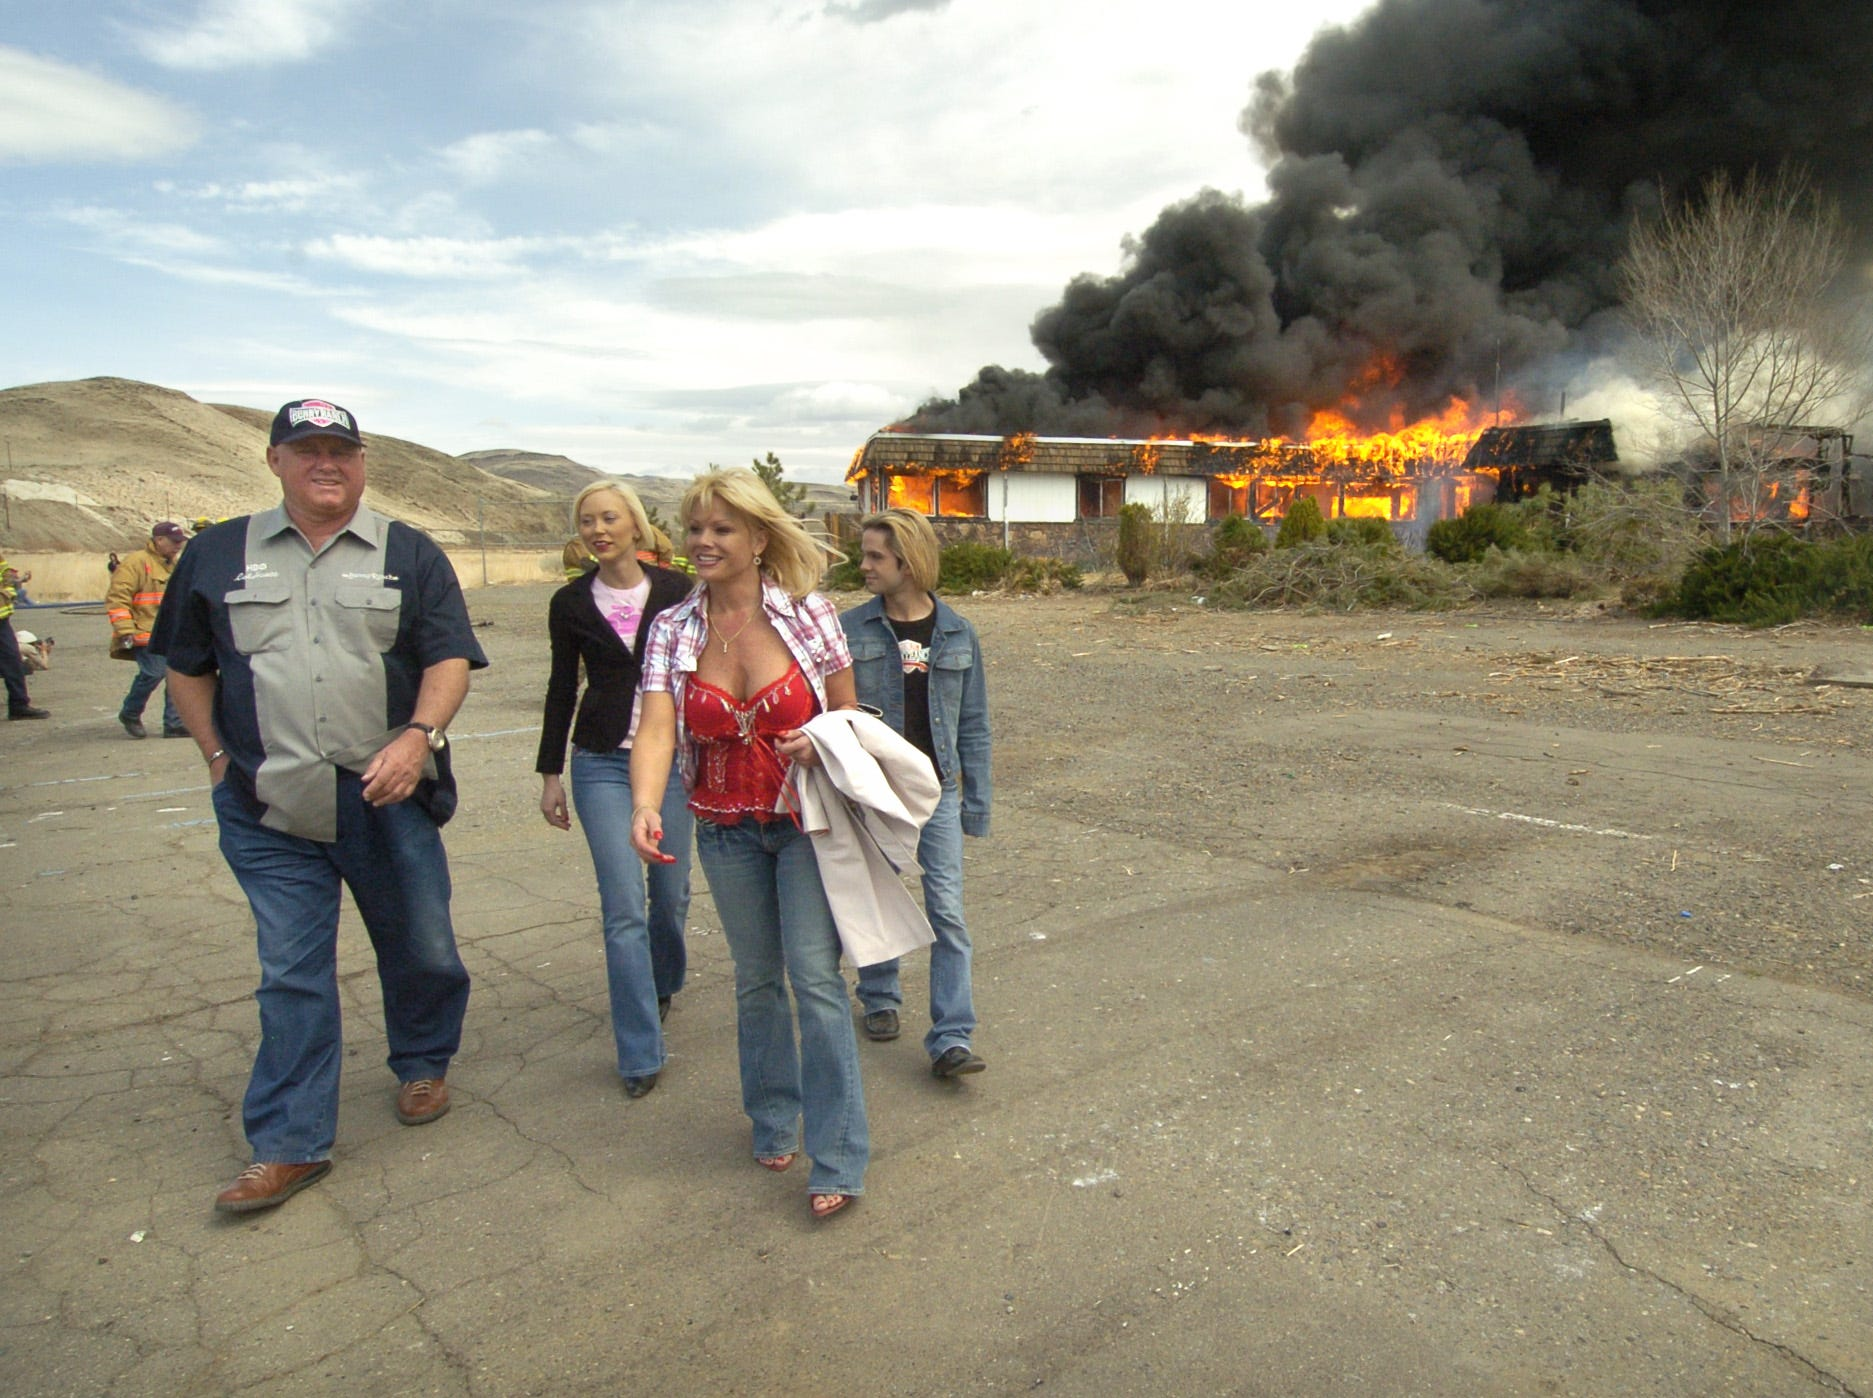 Moonlite Bunny Ranch owner Dennis Hof, left, walks from the scene as the old Mustang 2 brothel building goes up in flames Sunday, March 25, 2007. Hof, the owner of the building, donated it to Storey County so firefighters could use it for traning purposes. With Hof are Bunny Ranch working girls Brooke Taylor and Air Force Amy, along with bartender/personal assistant Kristopher Mendibil. Photo by David B. Parker.